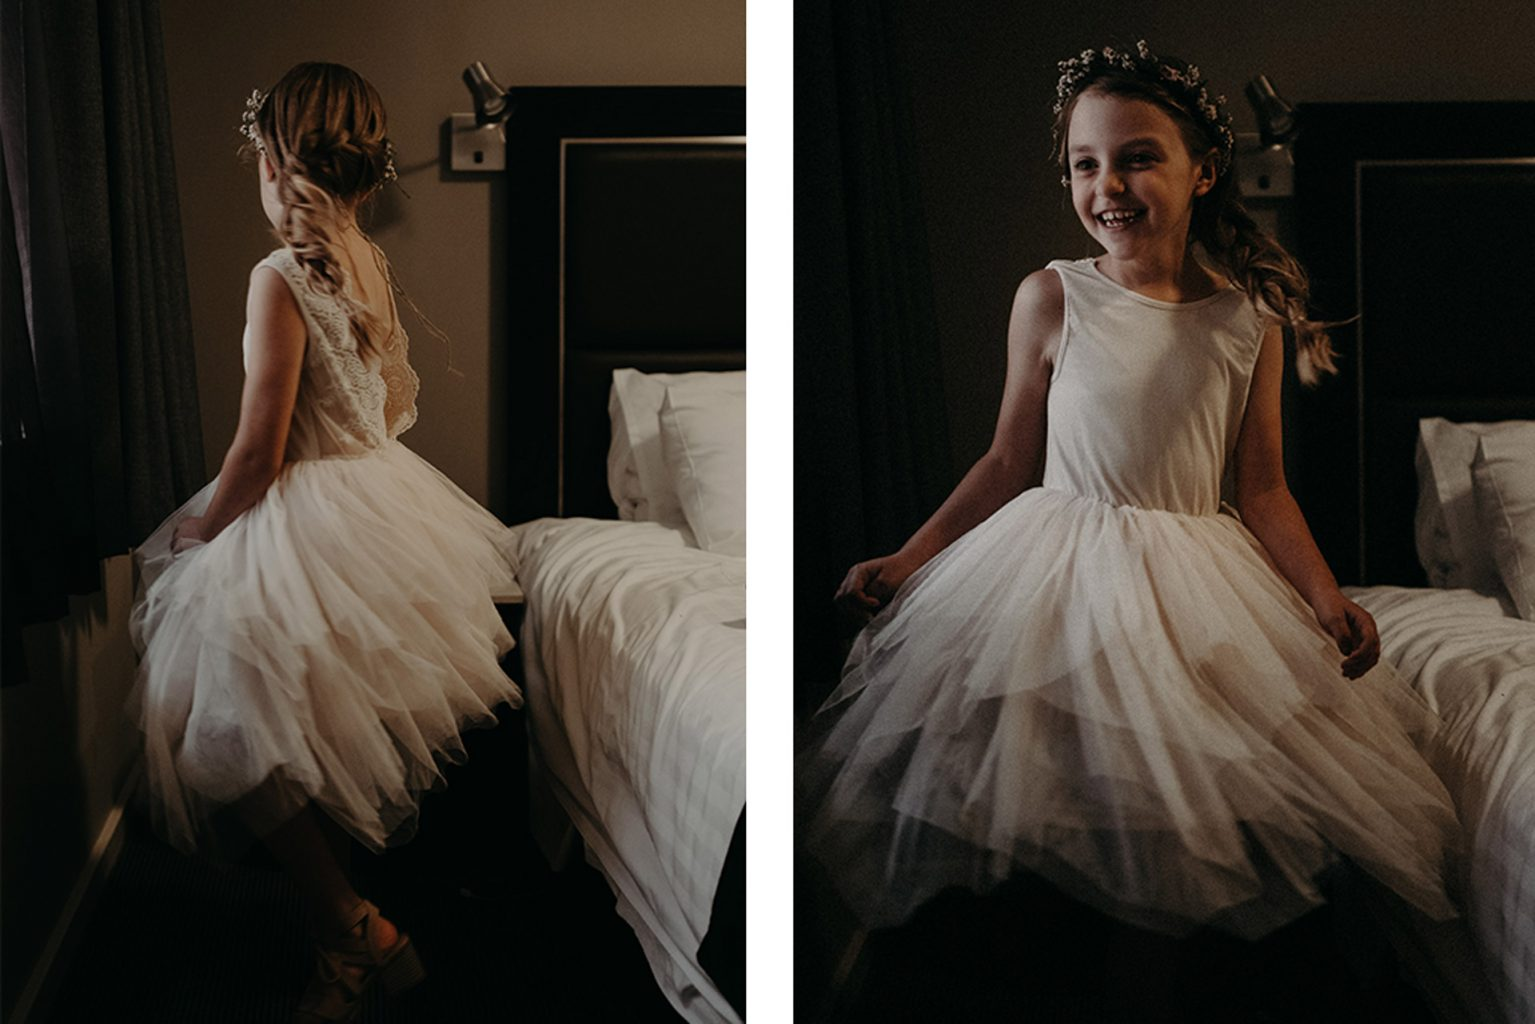 bridesmaid twirling by window